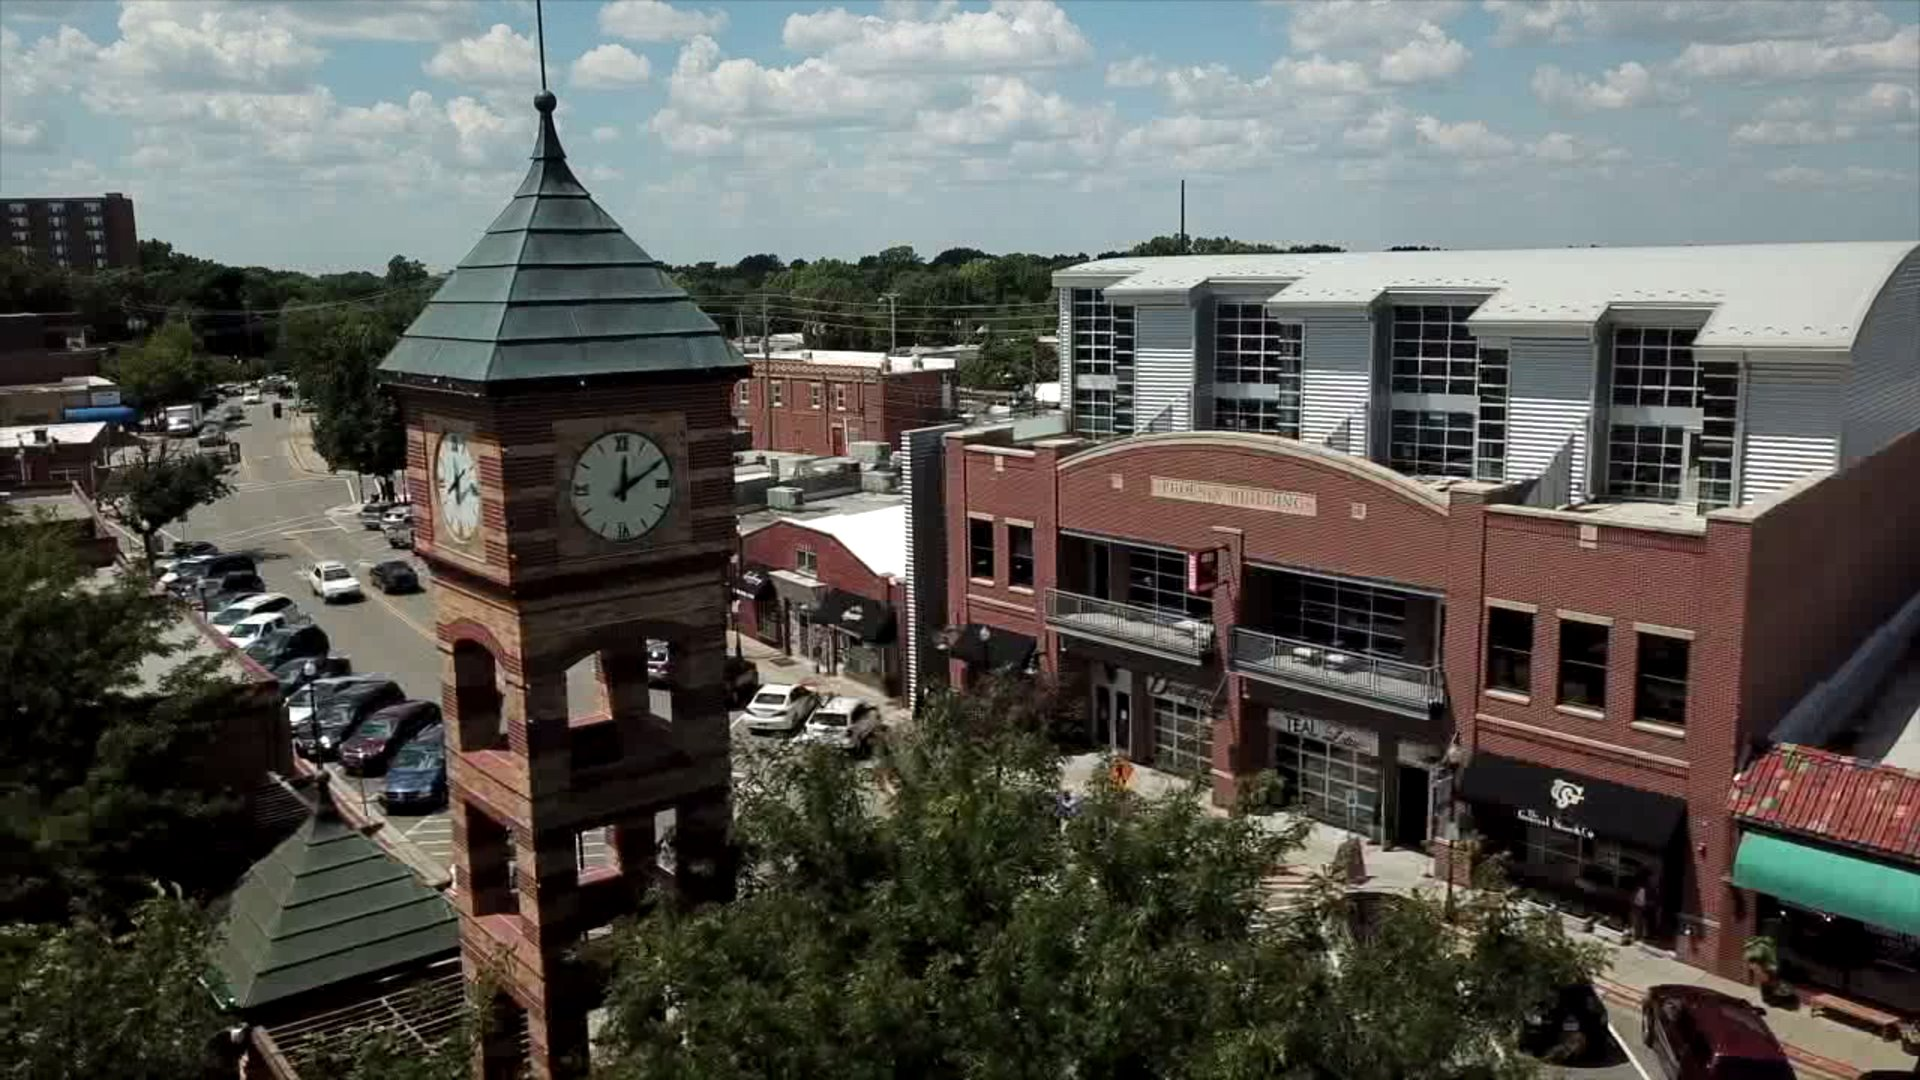 Picture of downtown Overland Park